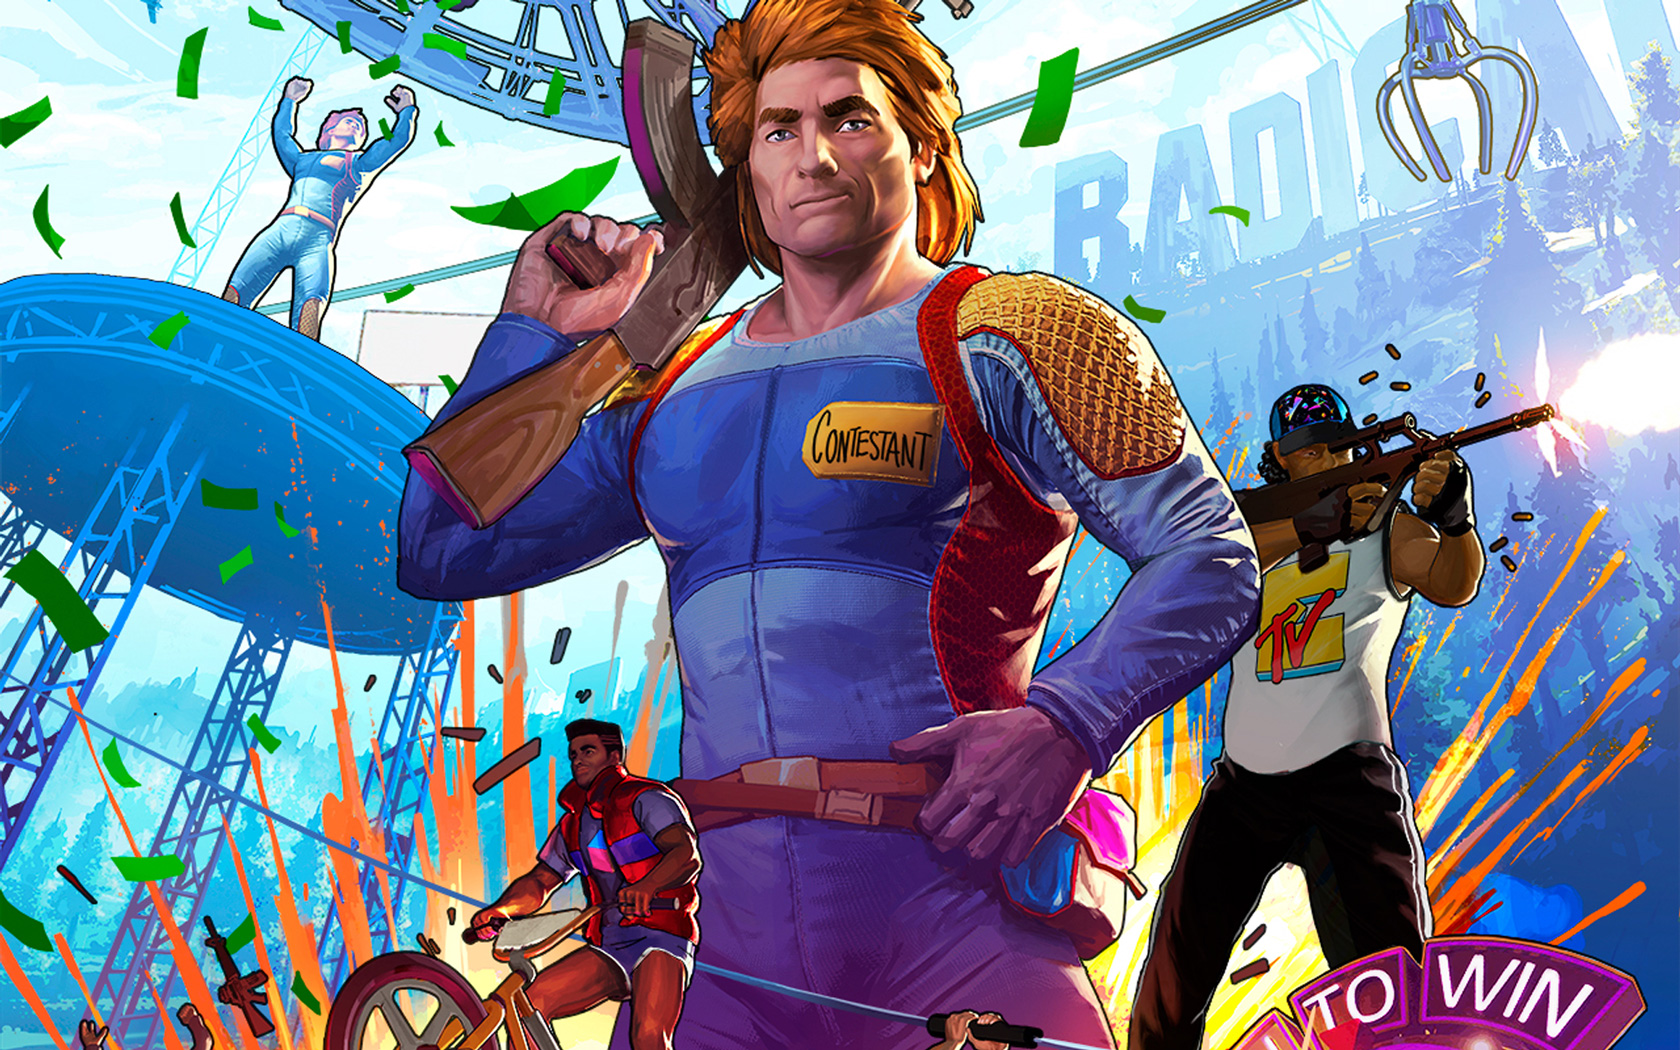 Free Radical Heights Wallpaper in 1680x1050